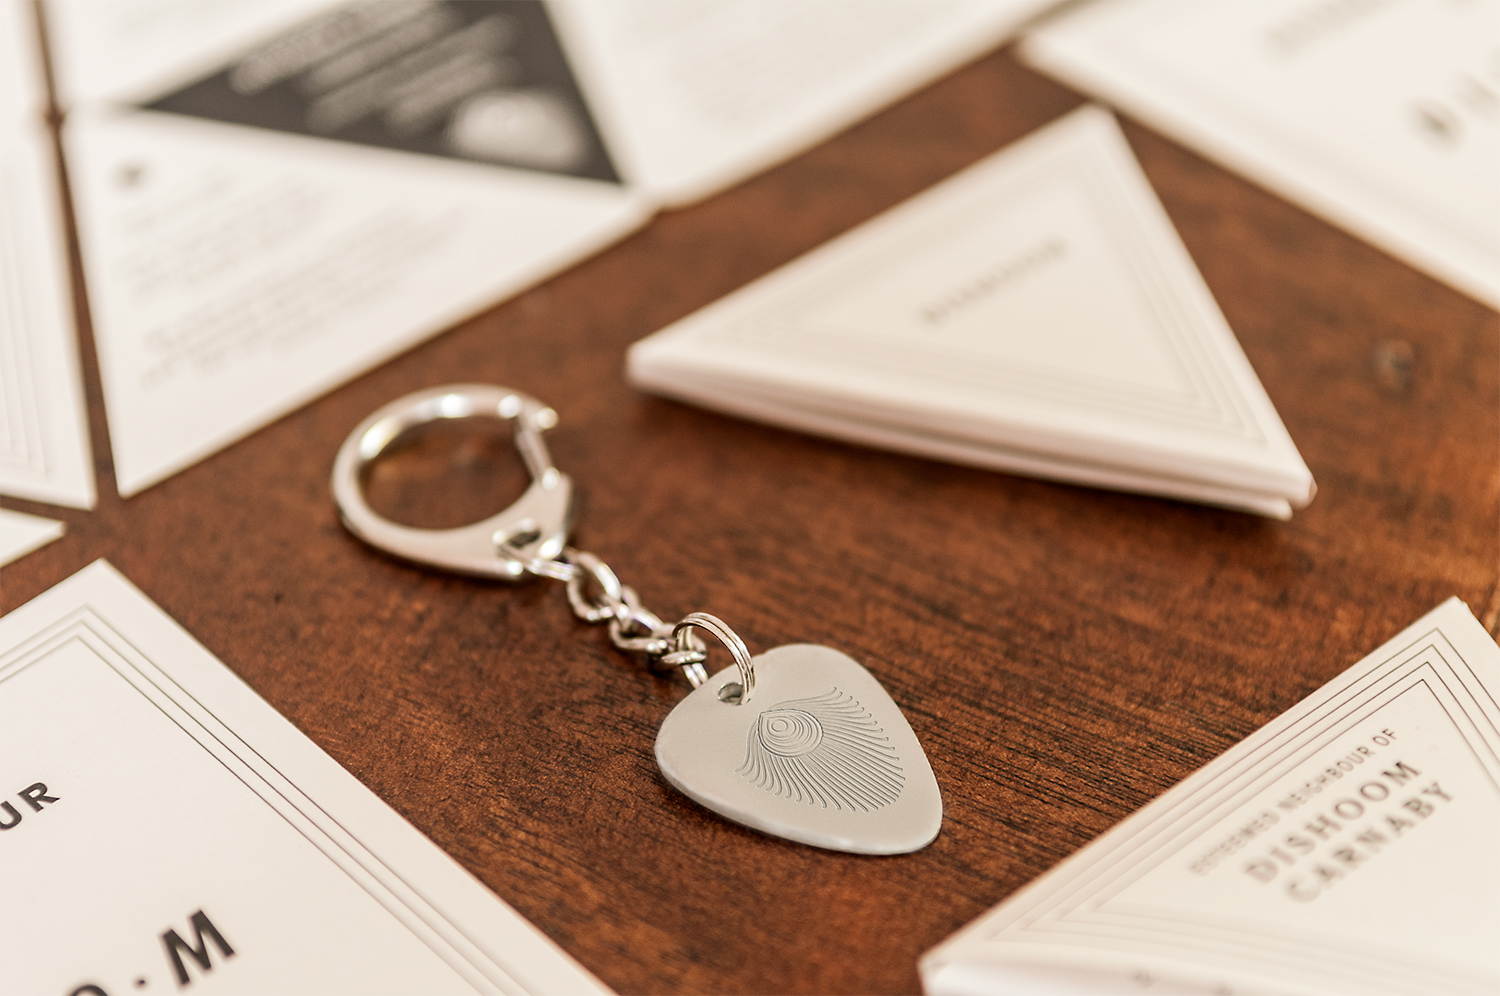 a silver keyring and small triangular envelope on a wooden table